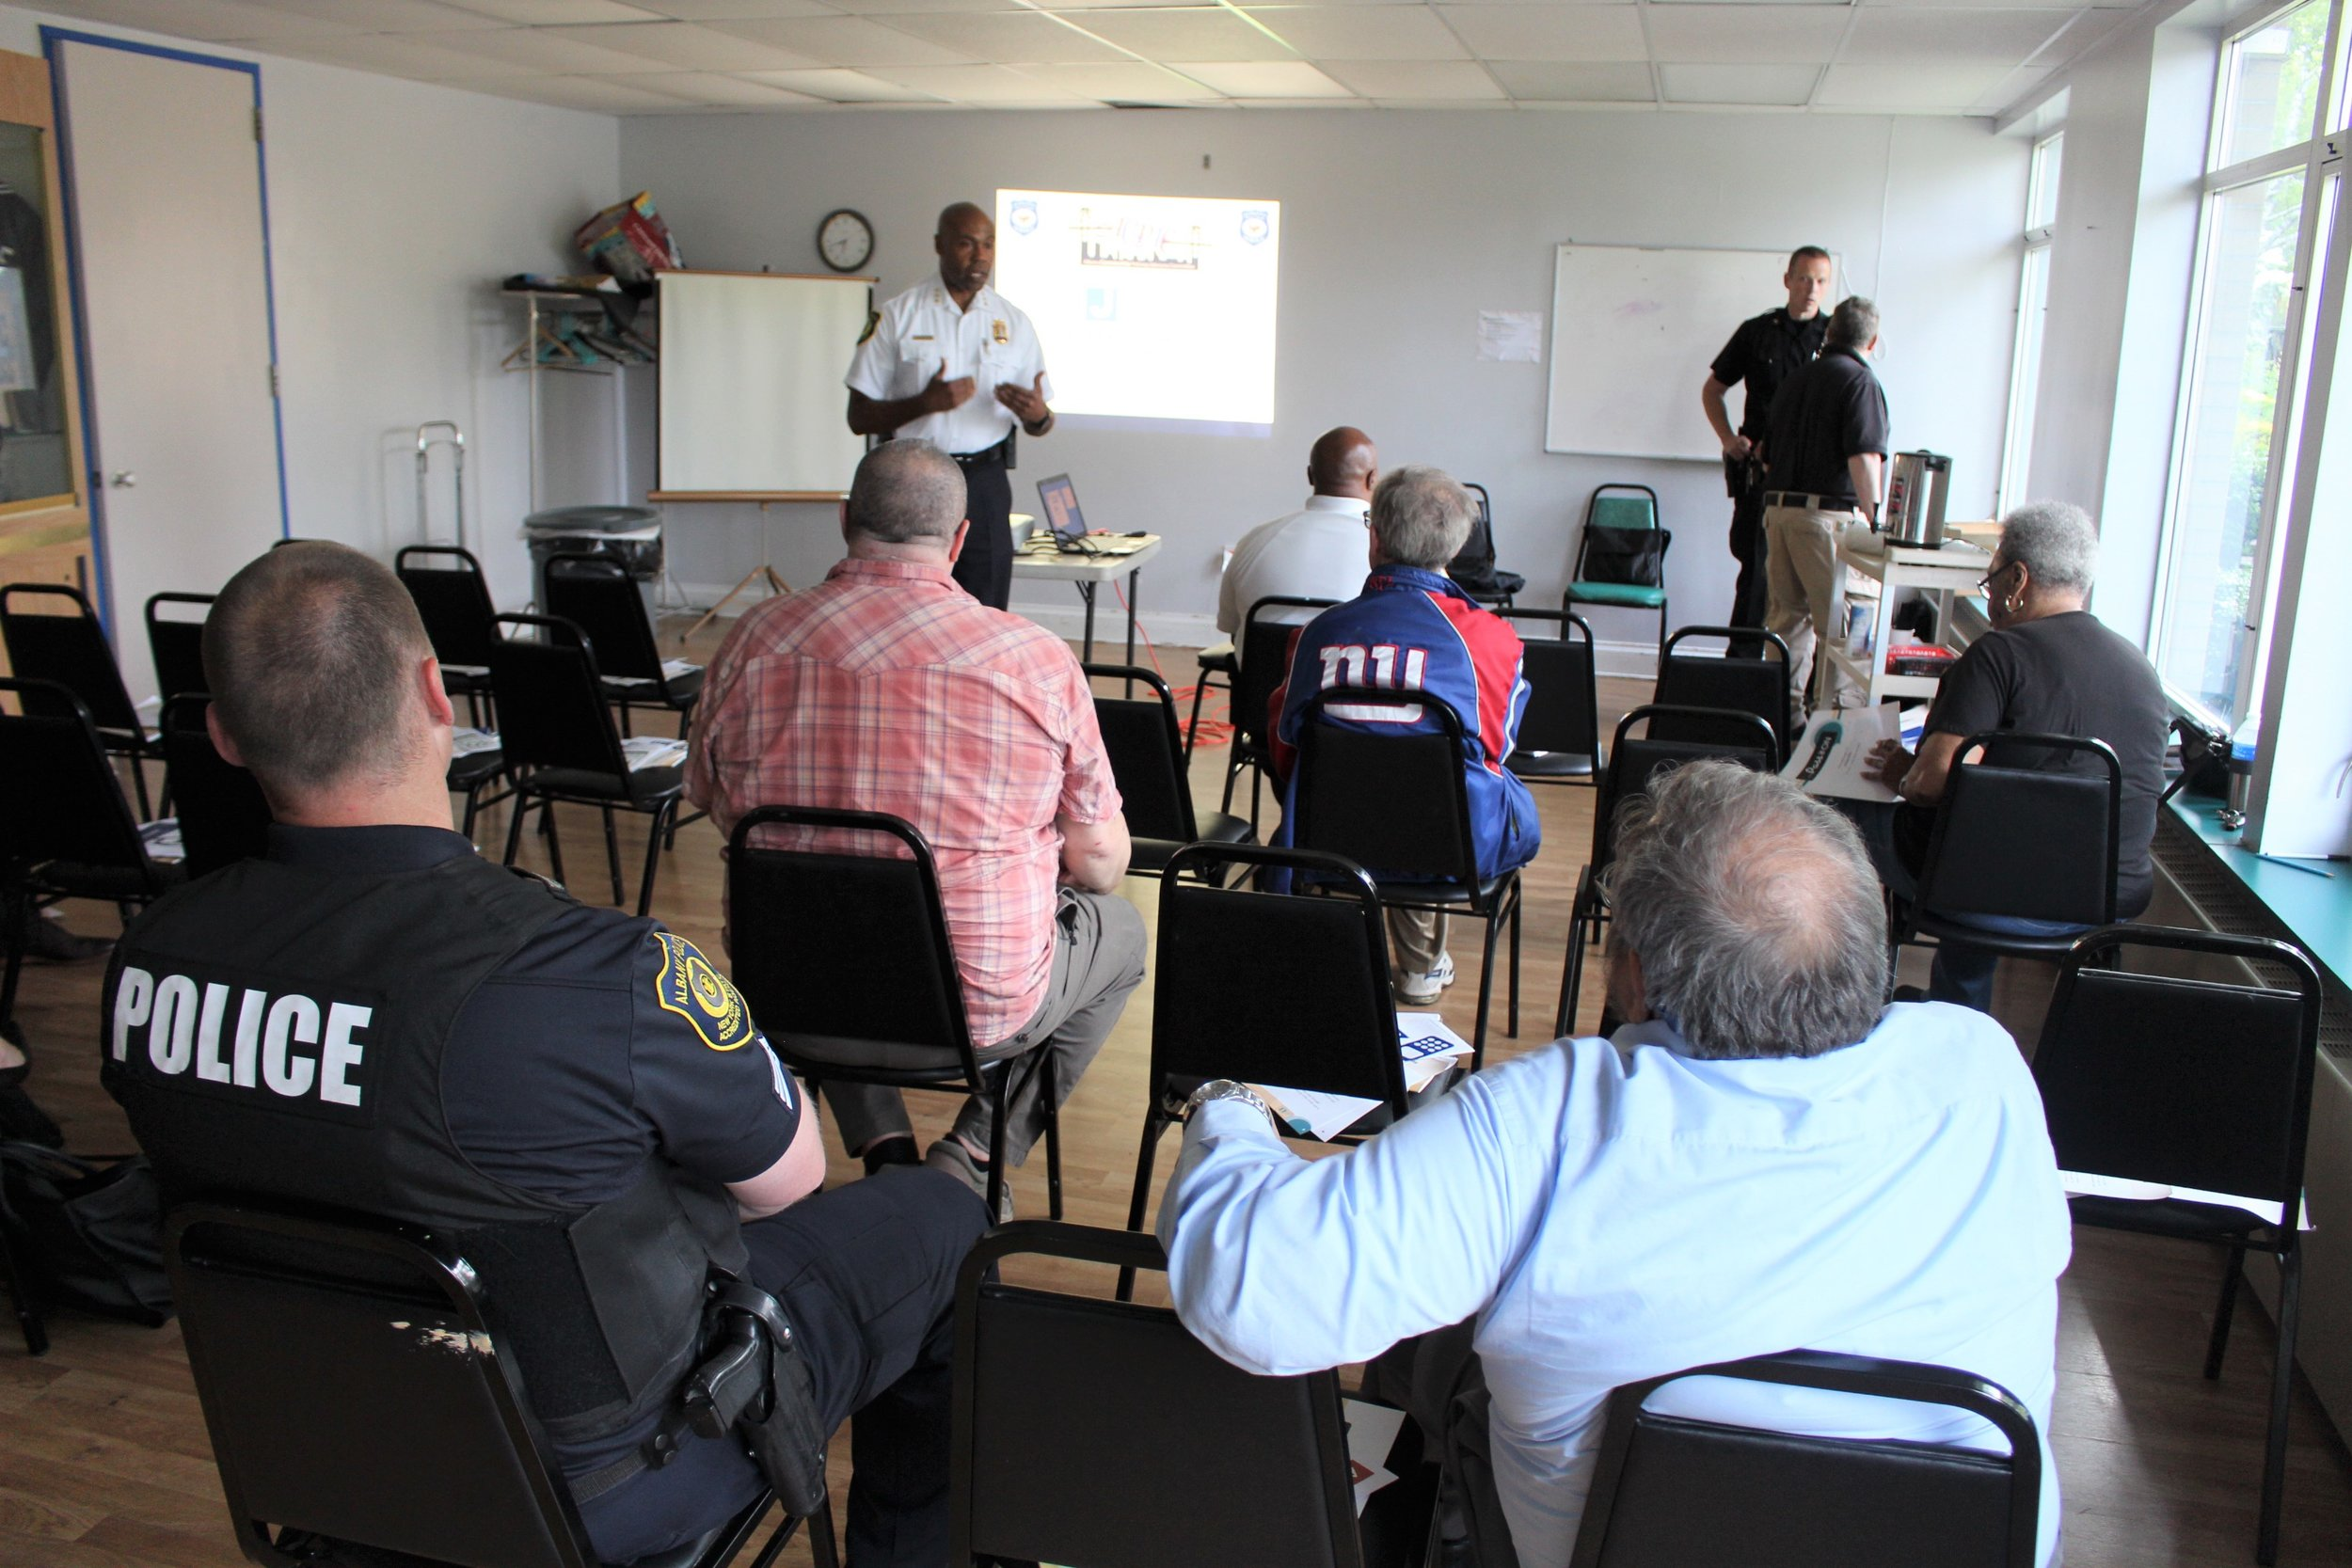 A meeting of the ACPAC with Chief Hawkins and police staff.